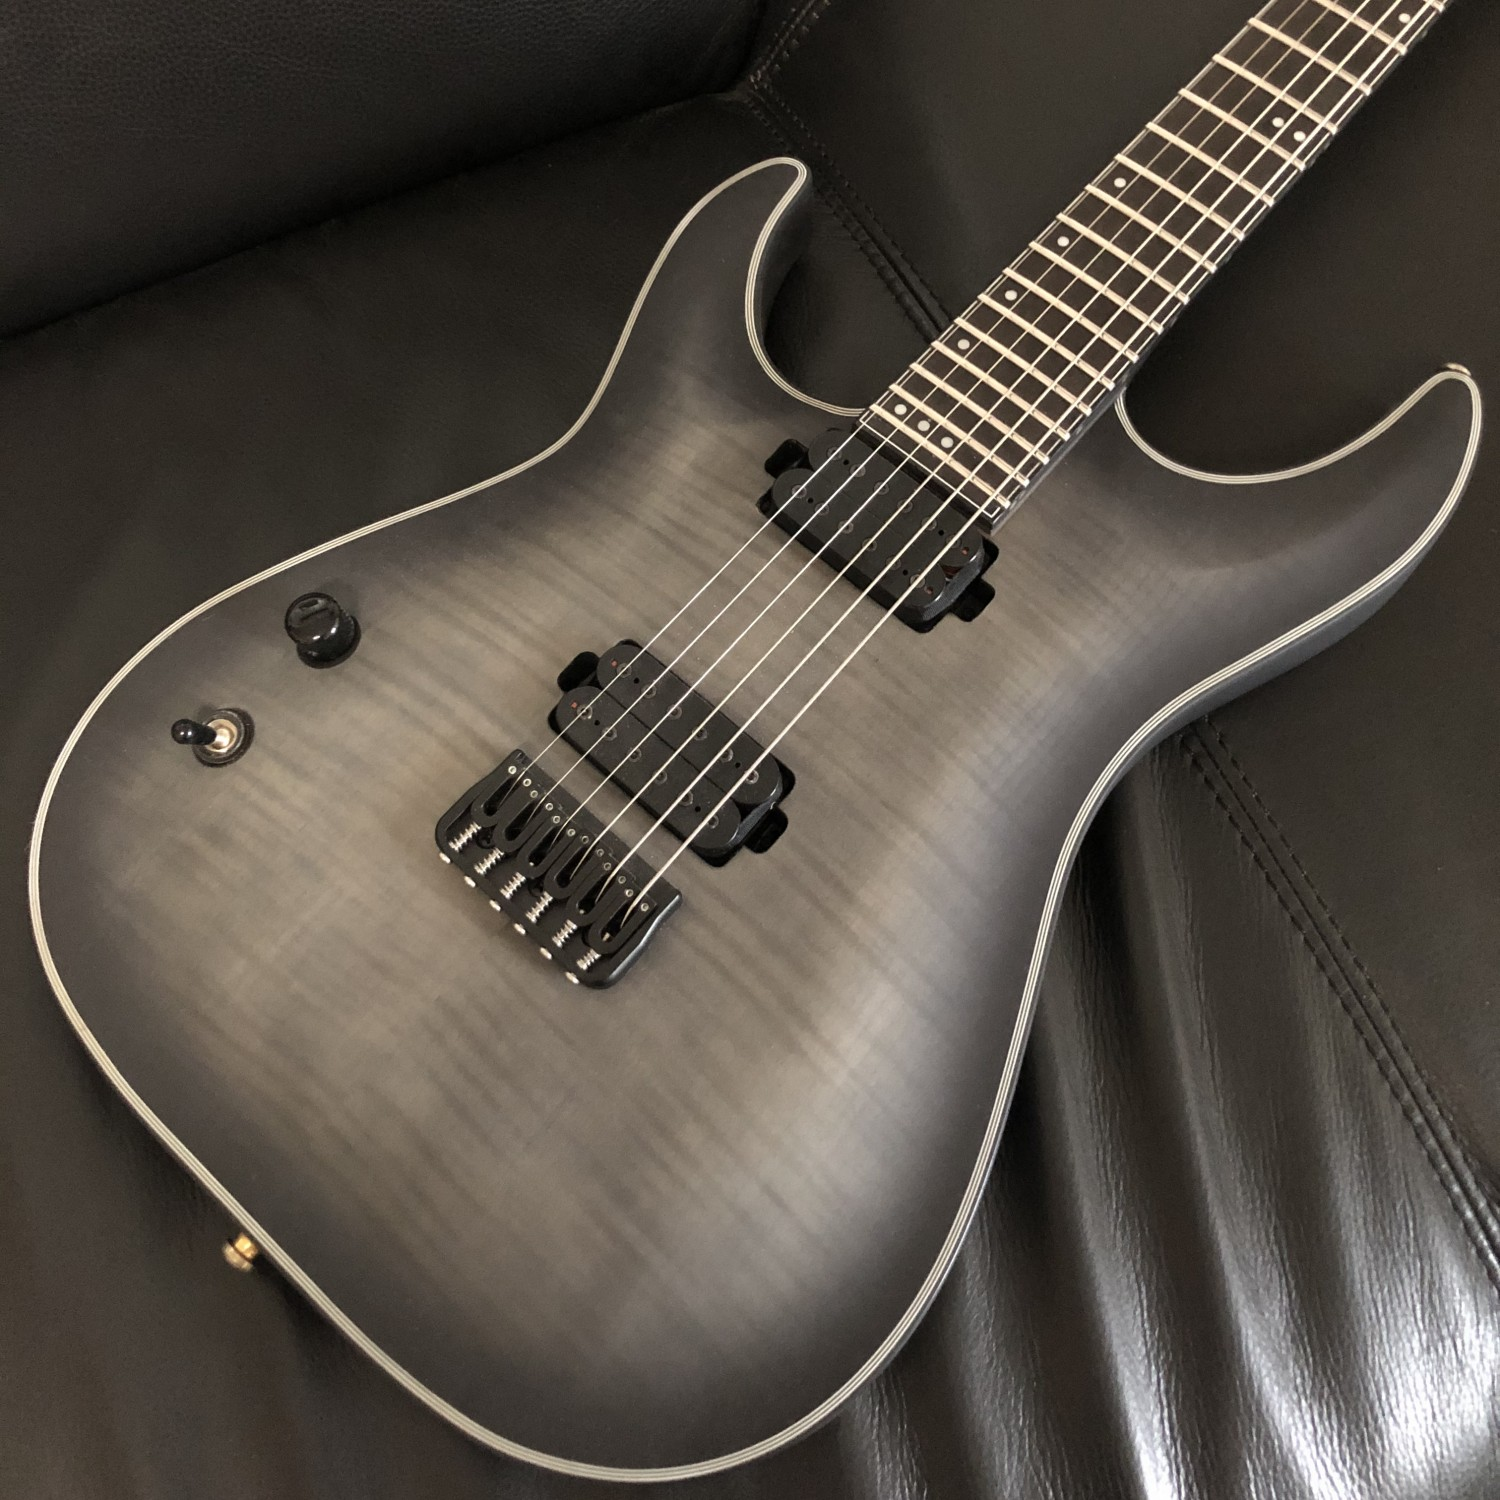 SCHECTER Keith Merrow KM-6 レフティ